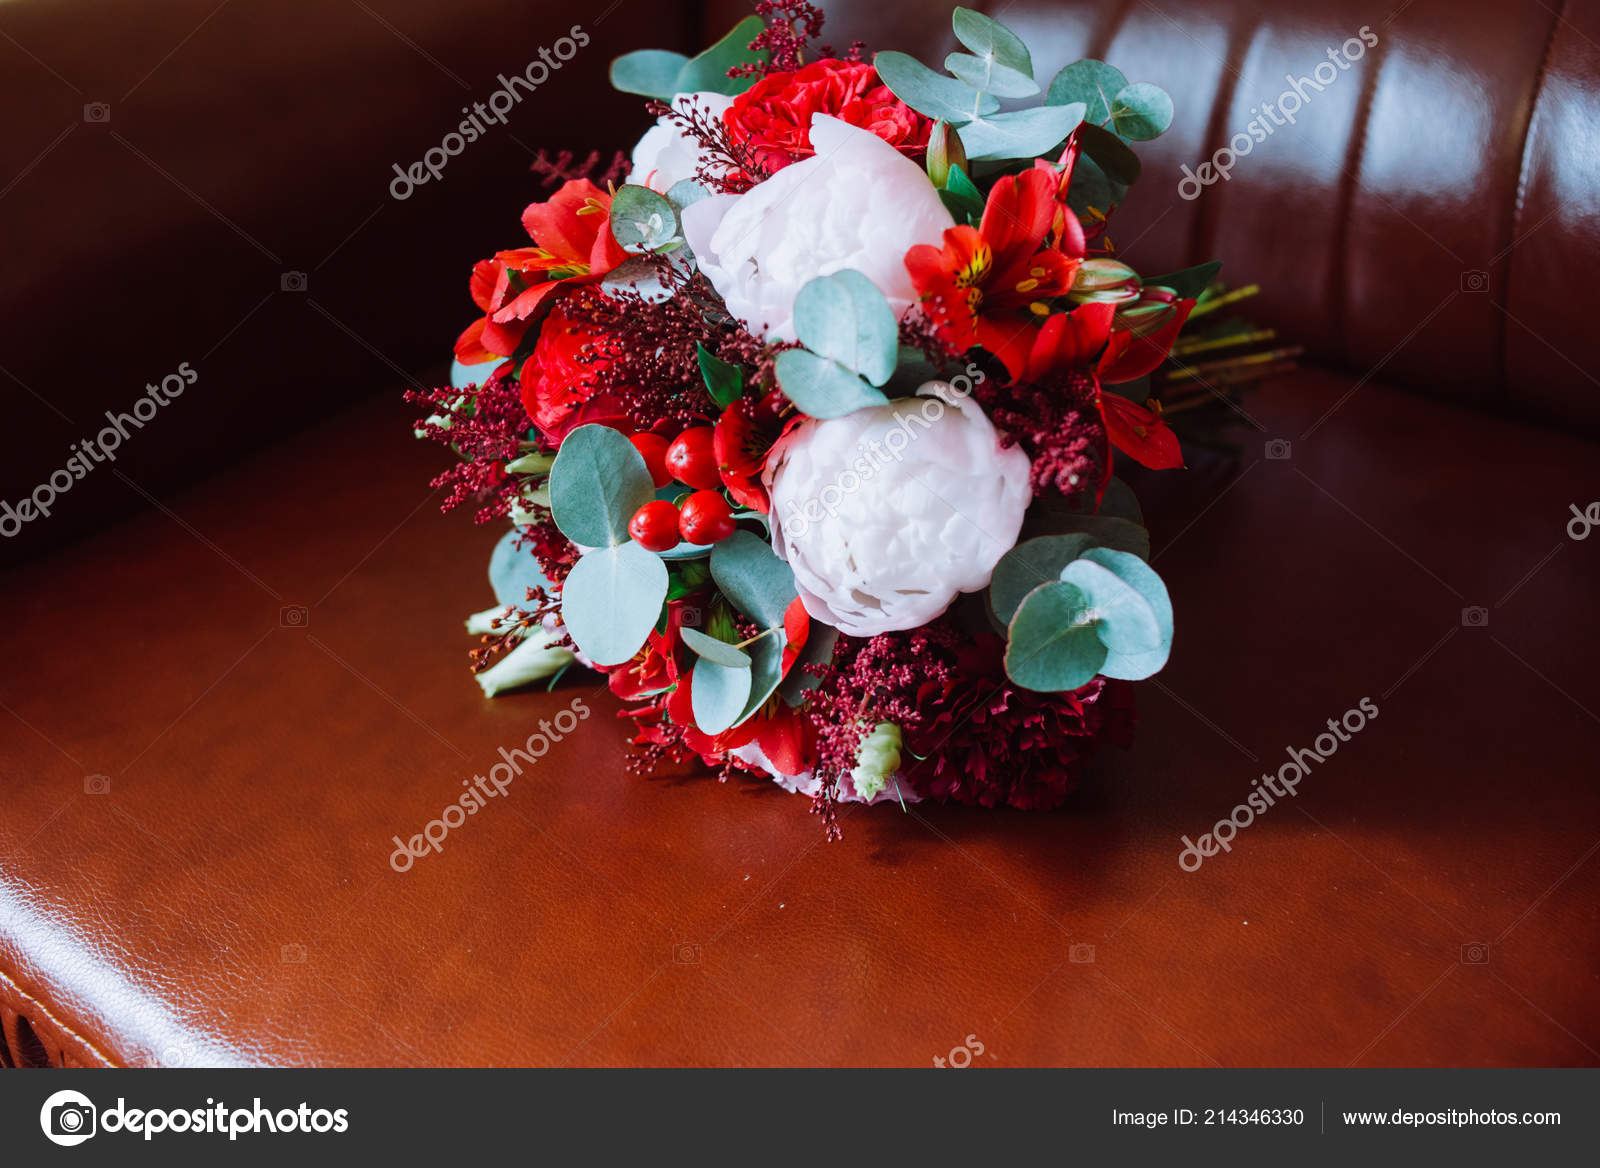 Wedding Bouquet Red White Flowers Standing Red Chair Stock Photo